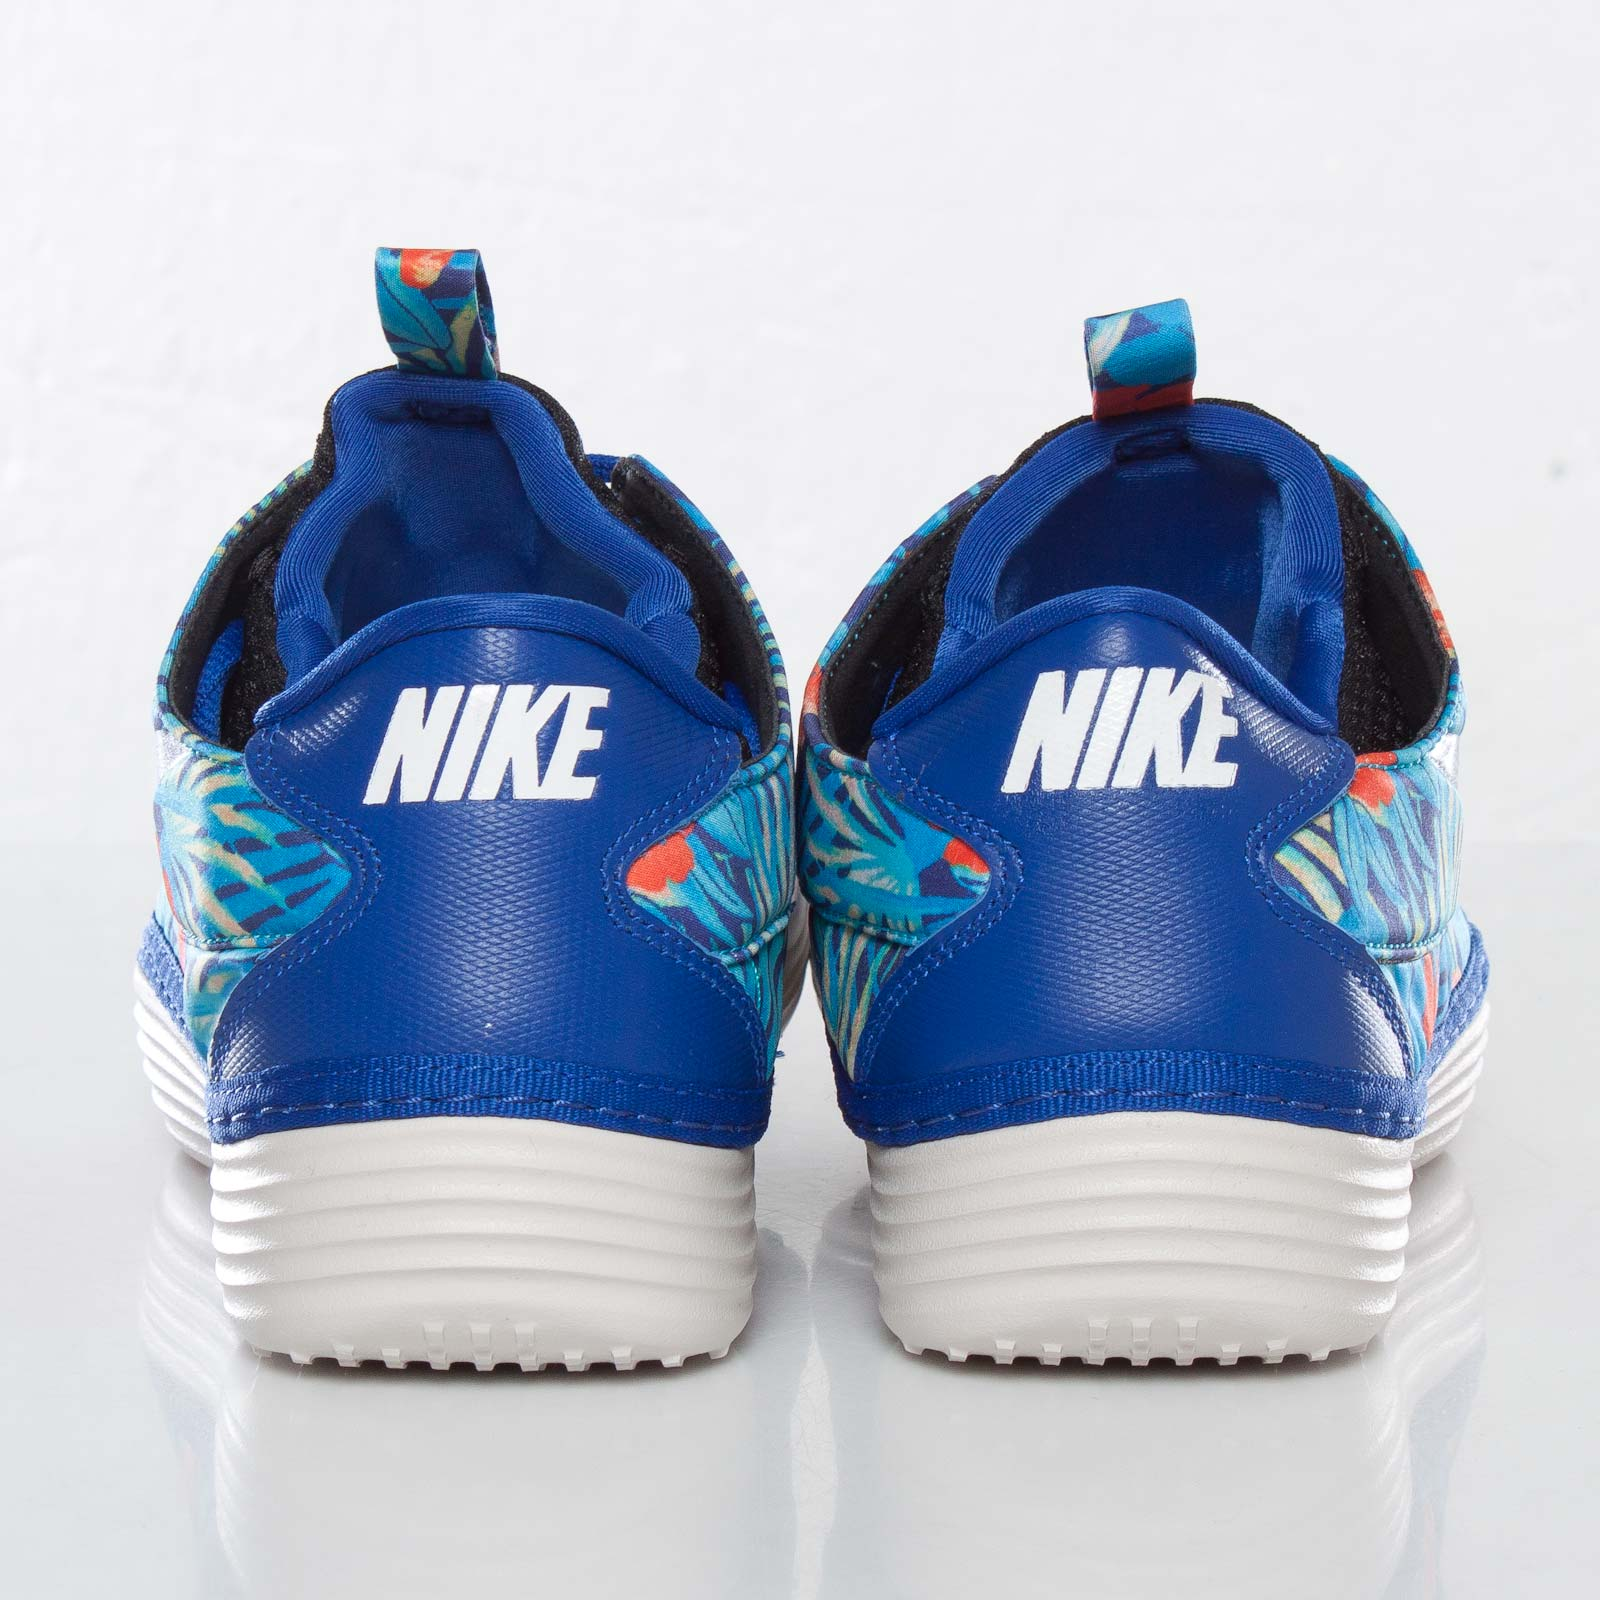 a5a457655b9a Nike Solarsoft Moccasin SP - 622269-444 - Sneakersnstuff